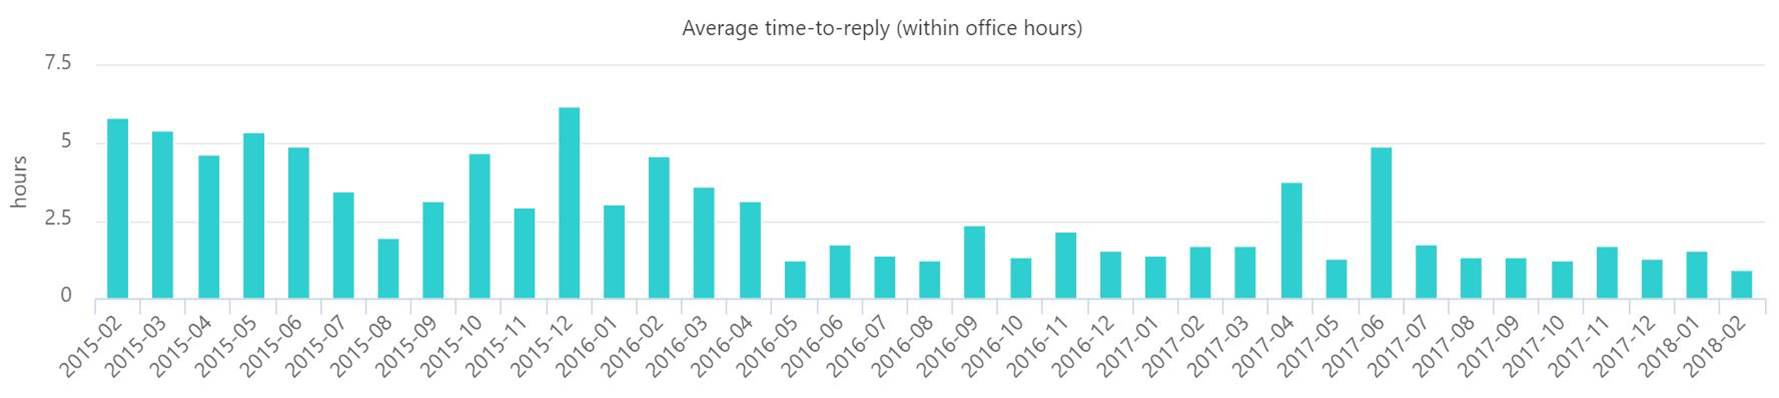 SuperOffice customer response times